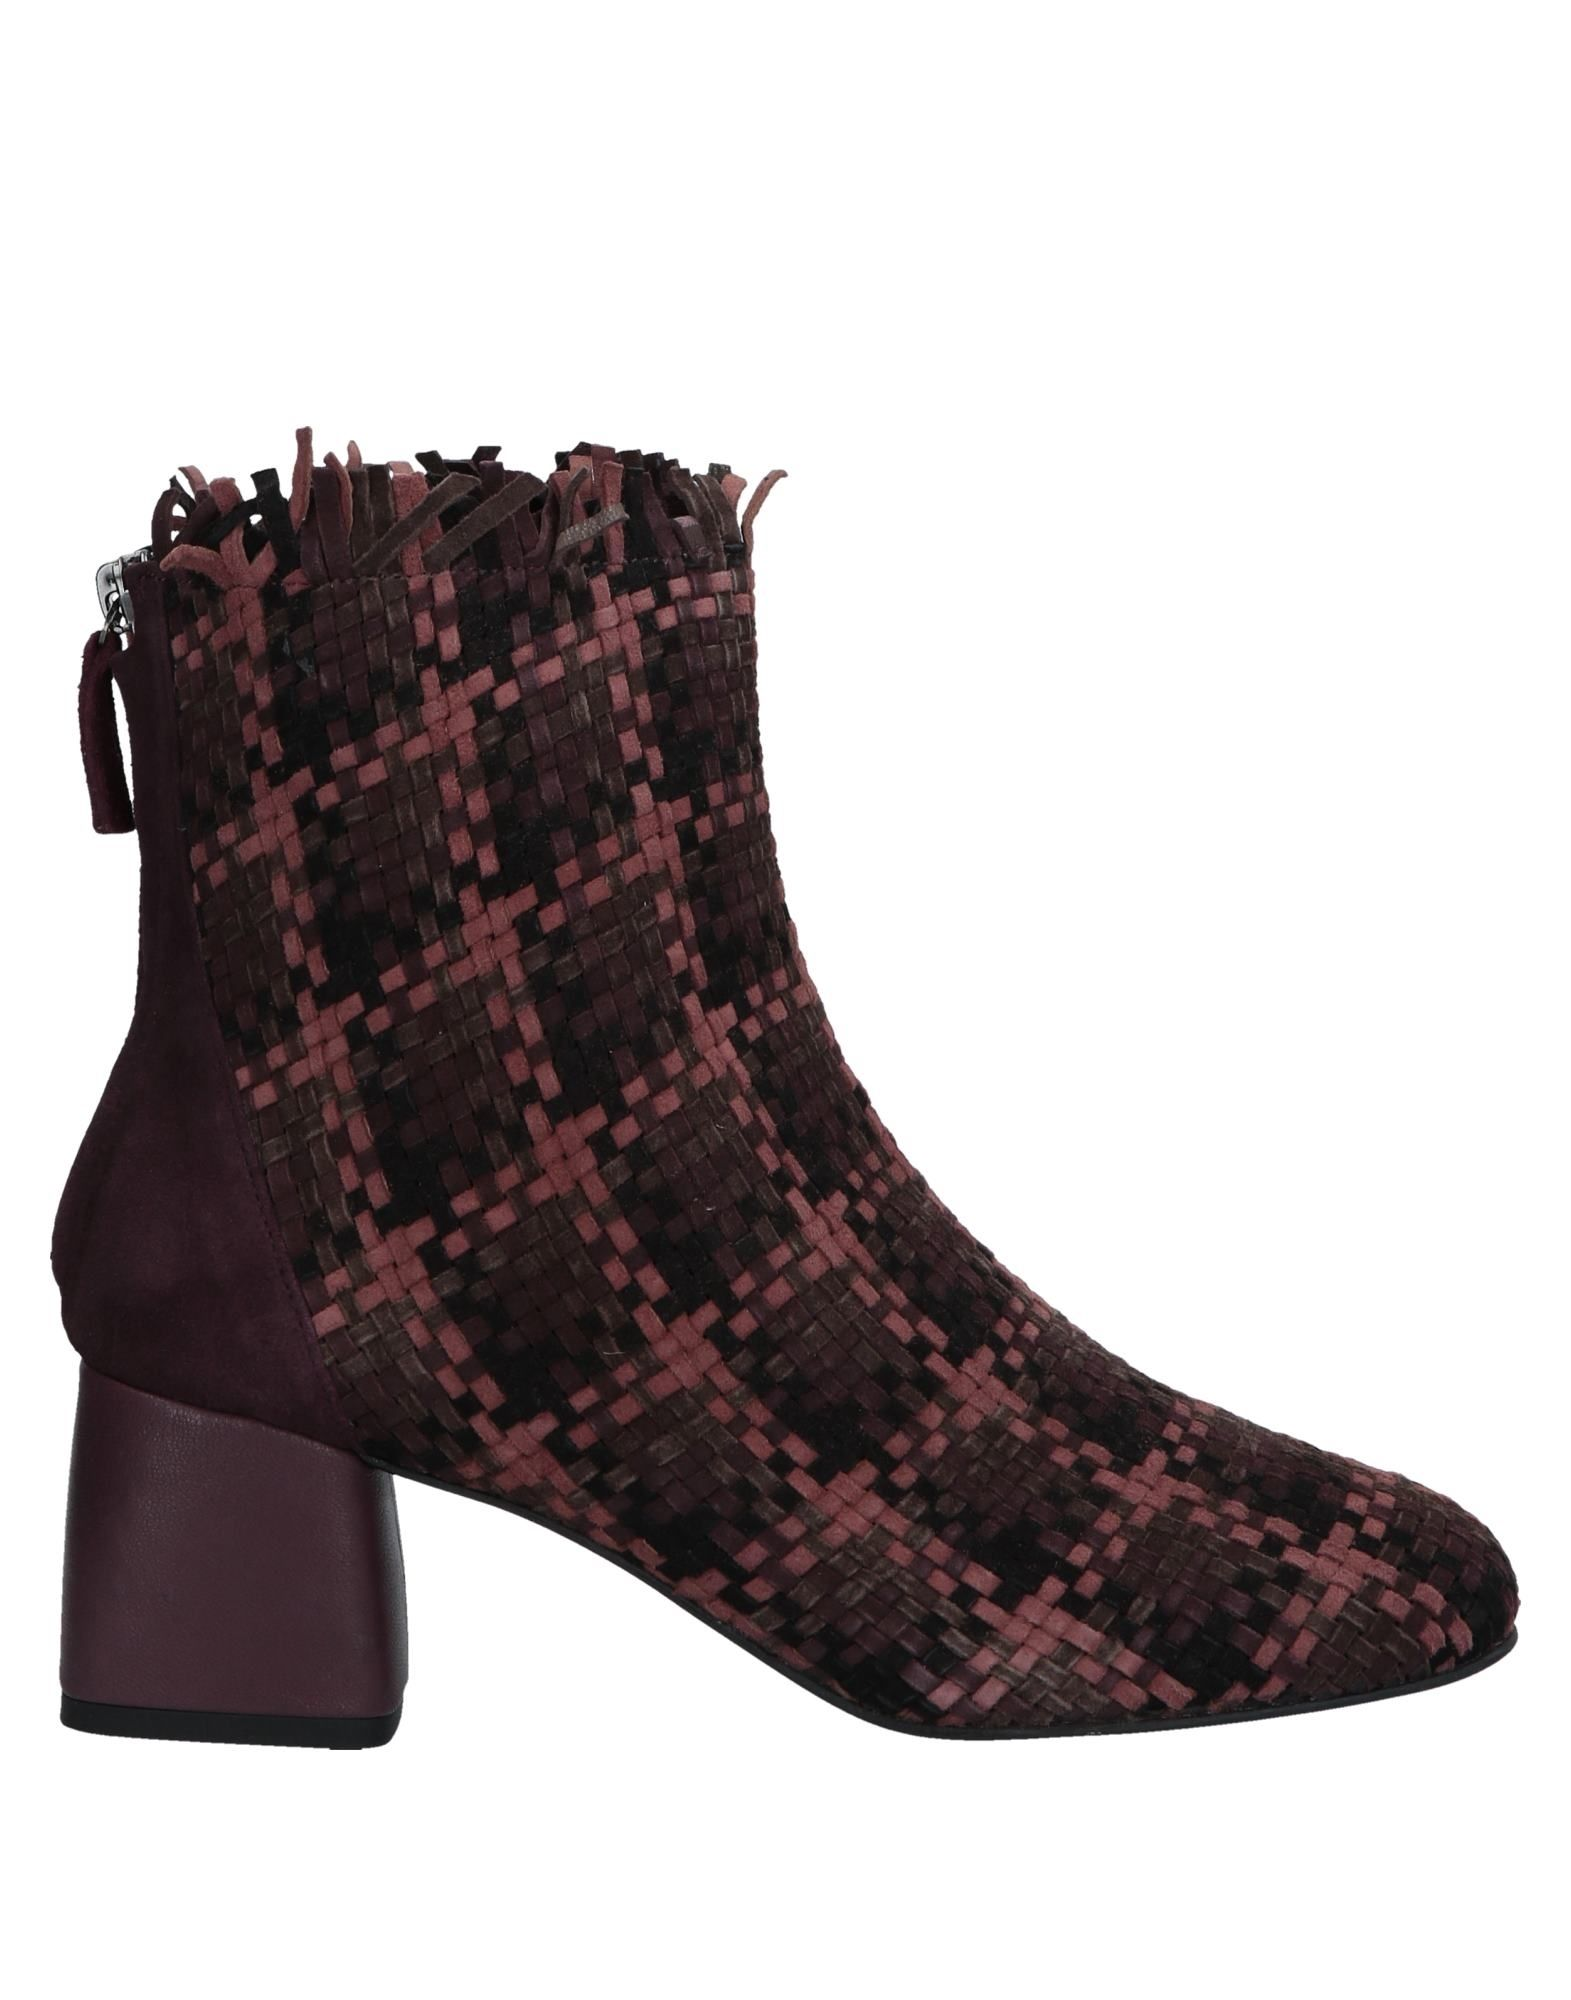 Pons Quintana Ankle Boot - Women Pons Quintana  Ankle Boots online on  Quintana United Kingdom - 11556060GI 3dc61f